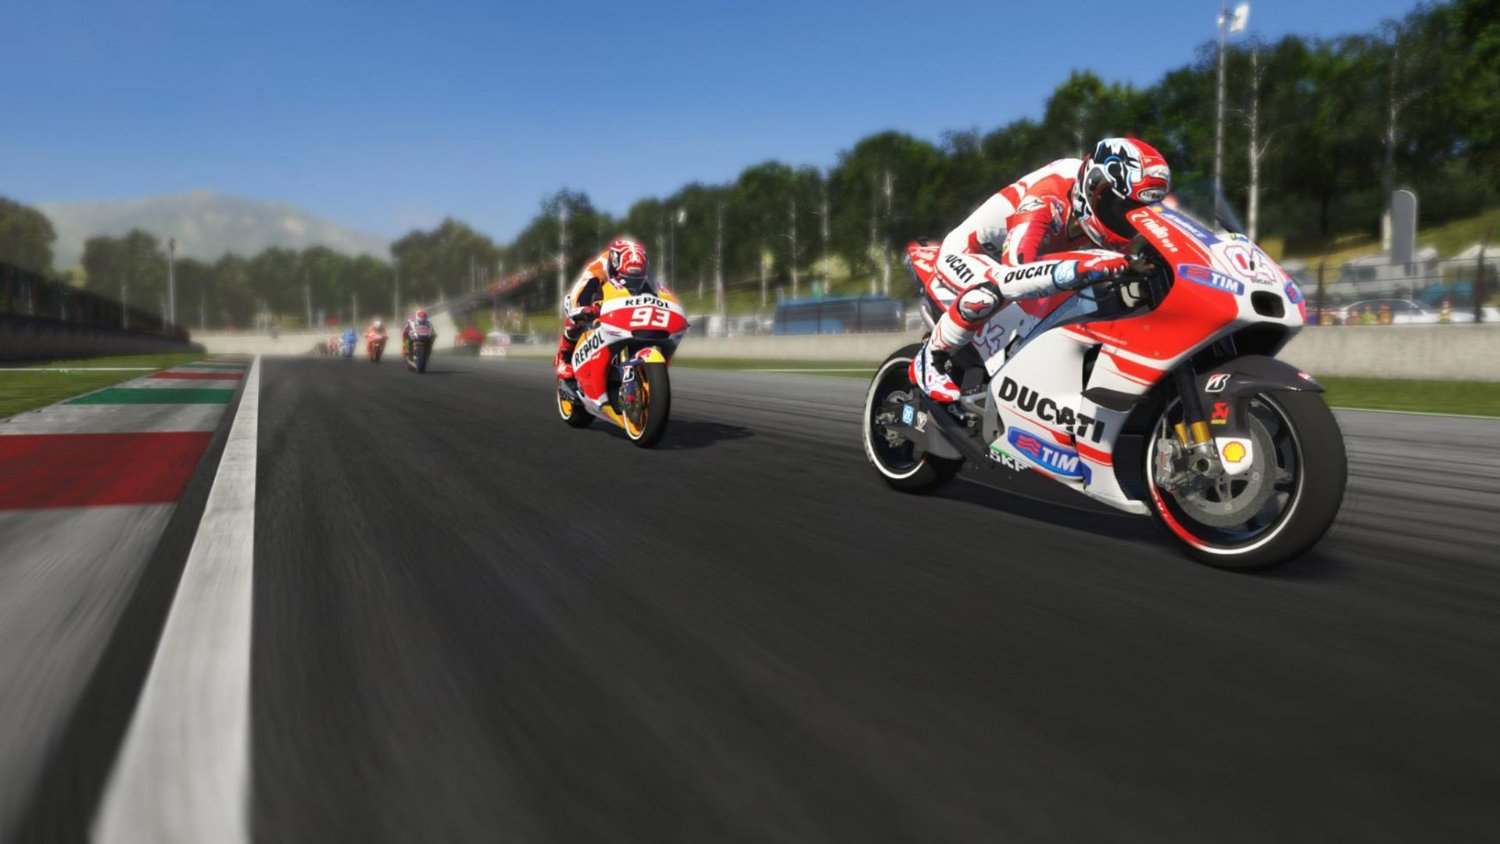 Motogp 15 Ps4 Release Date | MotoGP 2017 Info, Video, Points Table